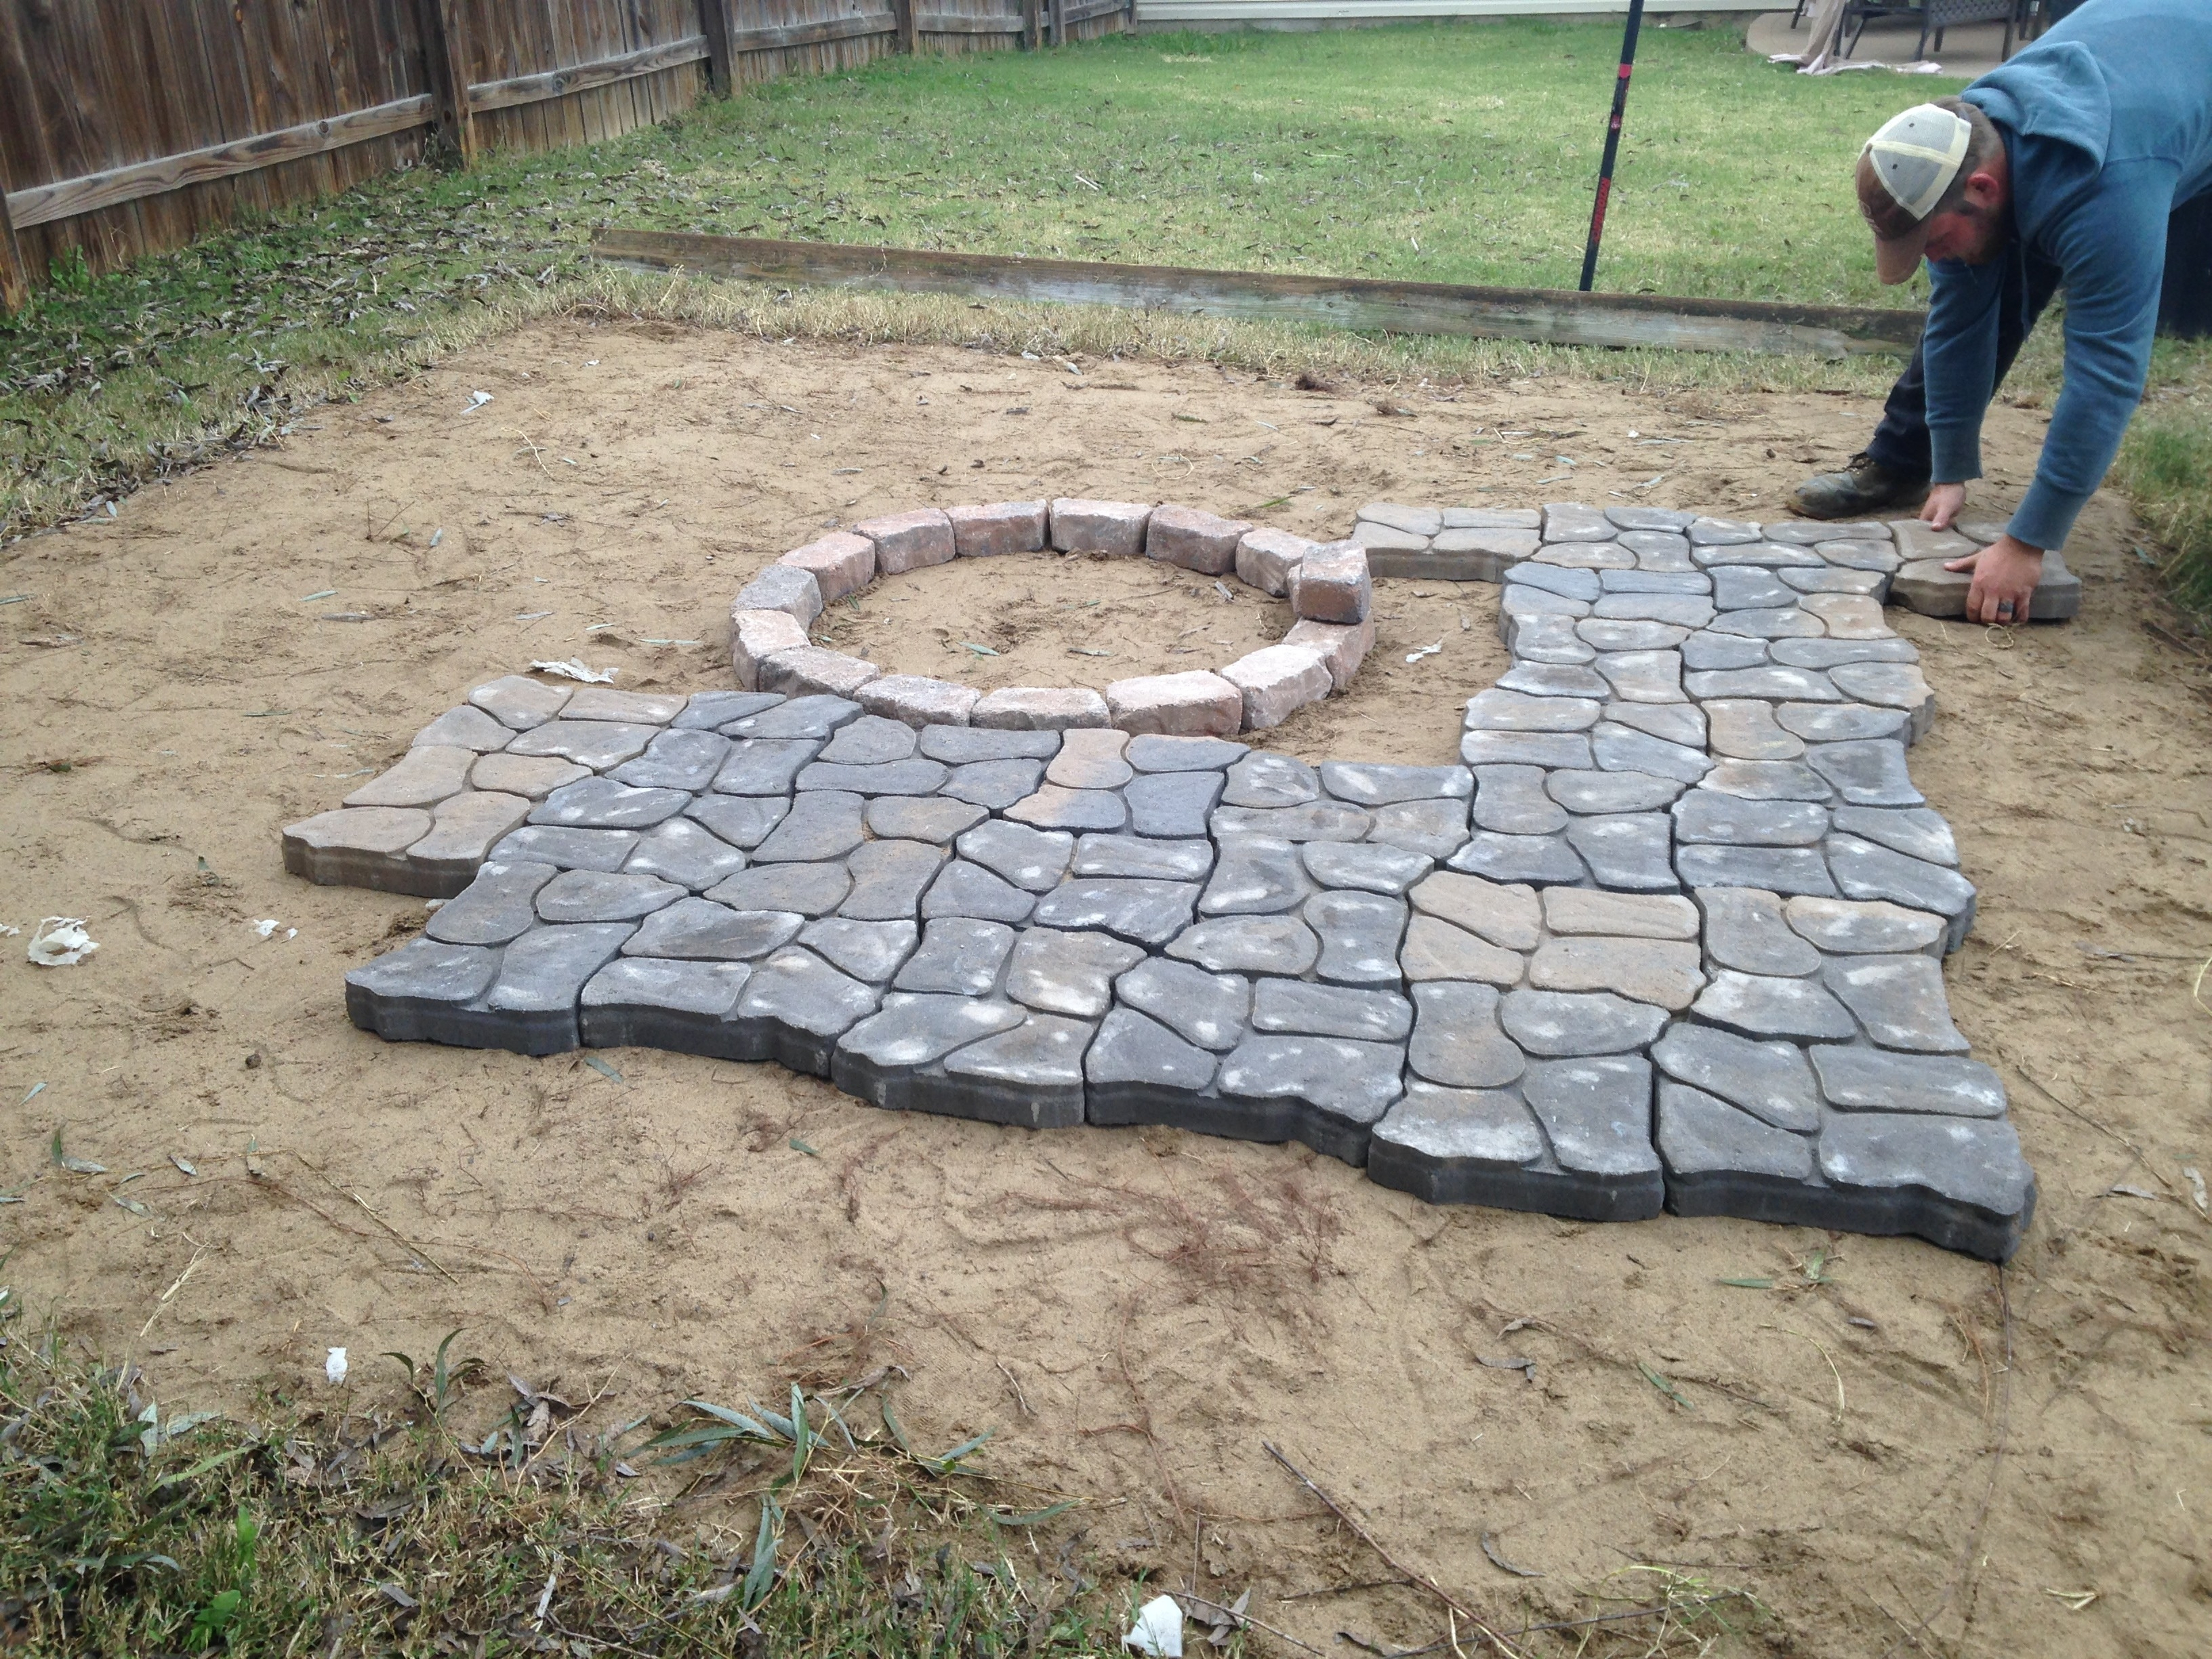 How To Lay Stone Patio Elegant Patio 1 Lowes Patio Pavers How To intended for 12 Awesome Ideas How to Improve Lowes Backyard Ideas